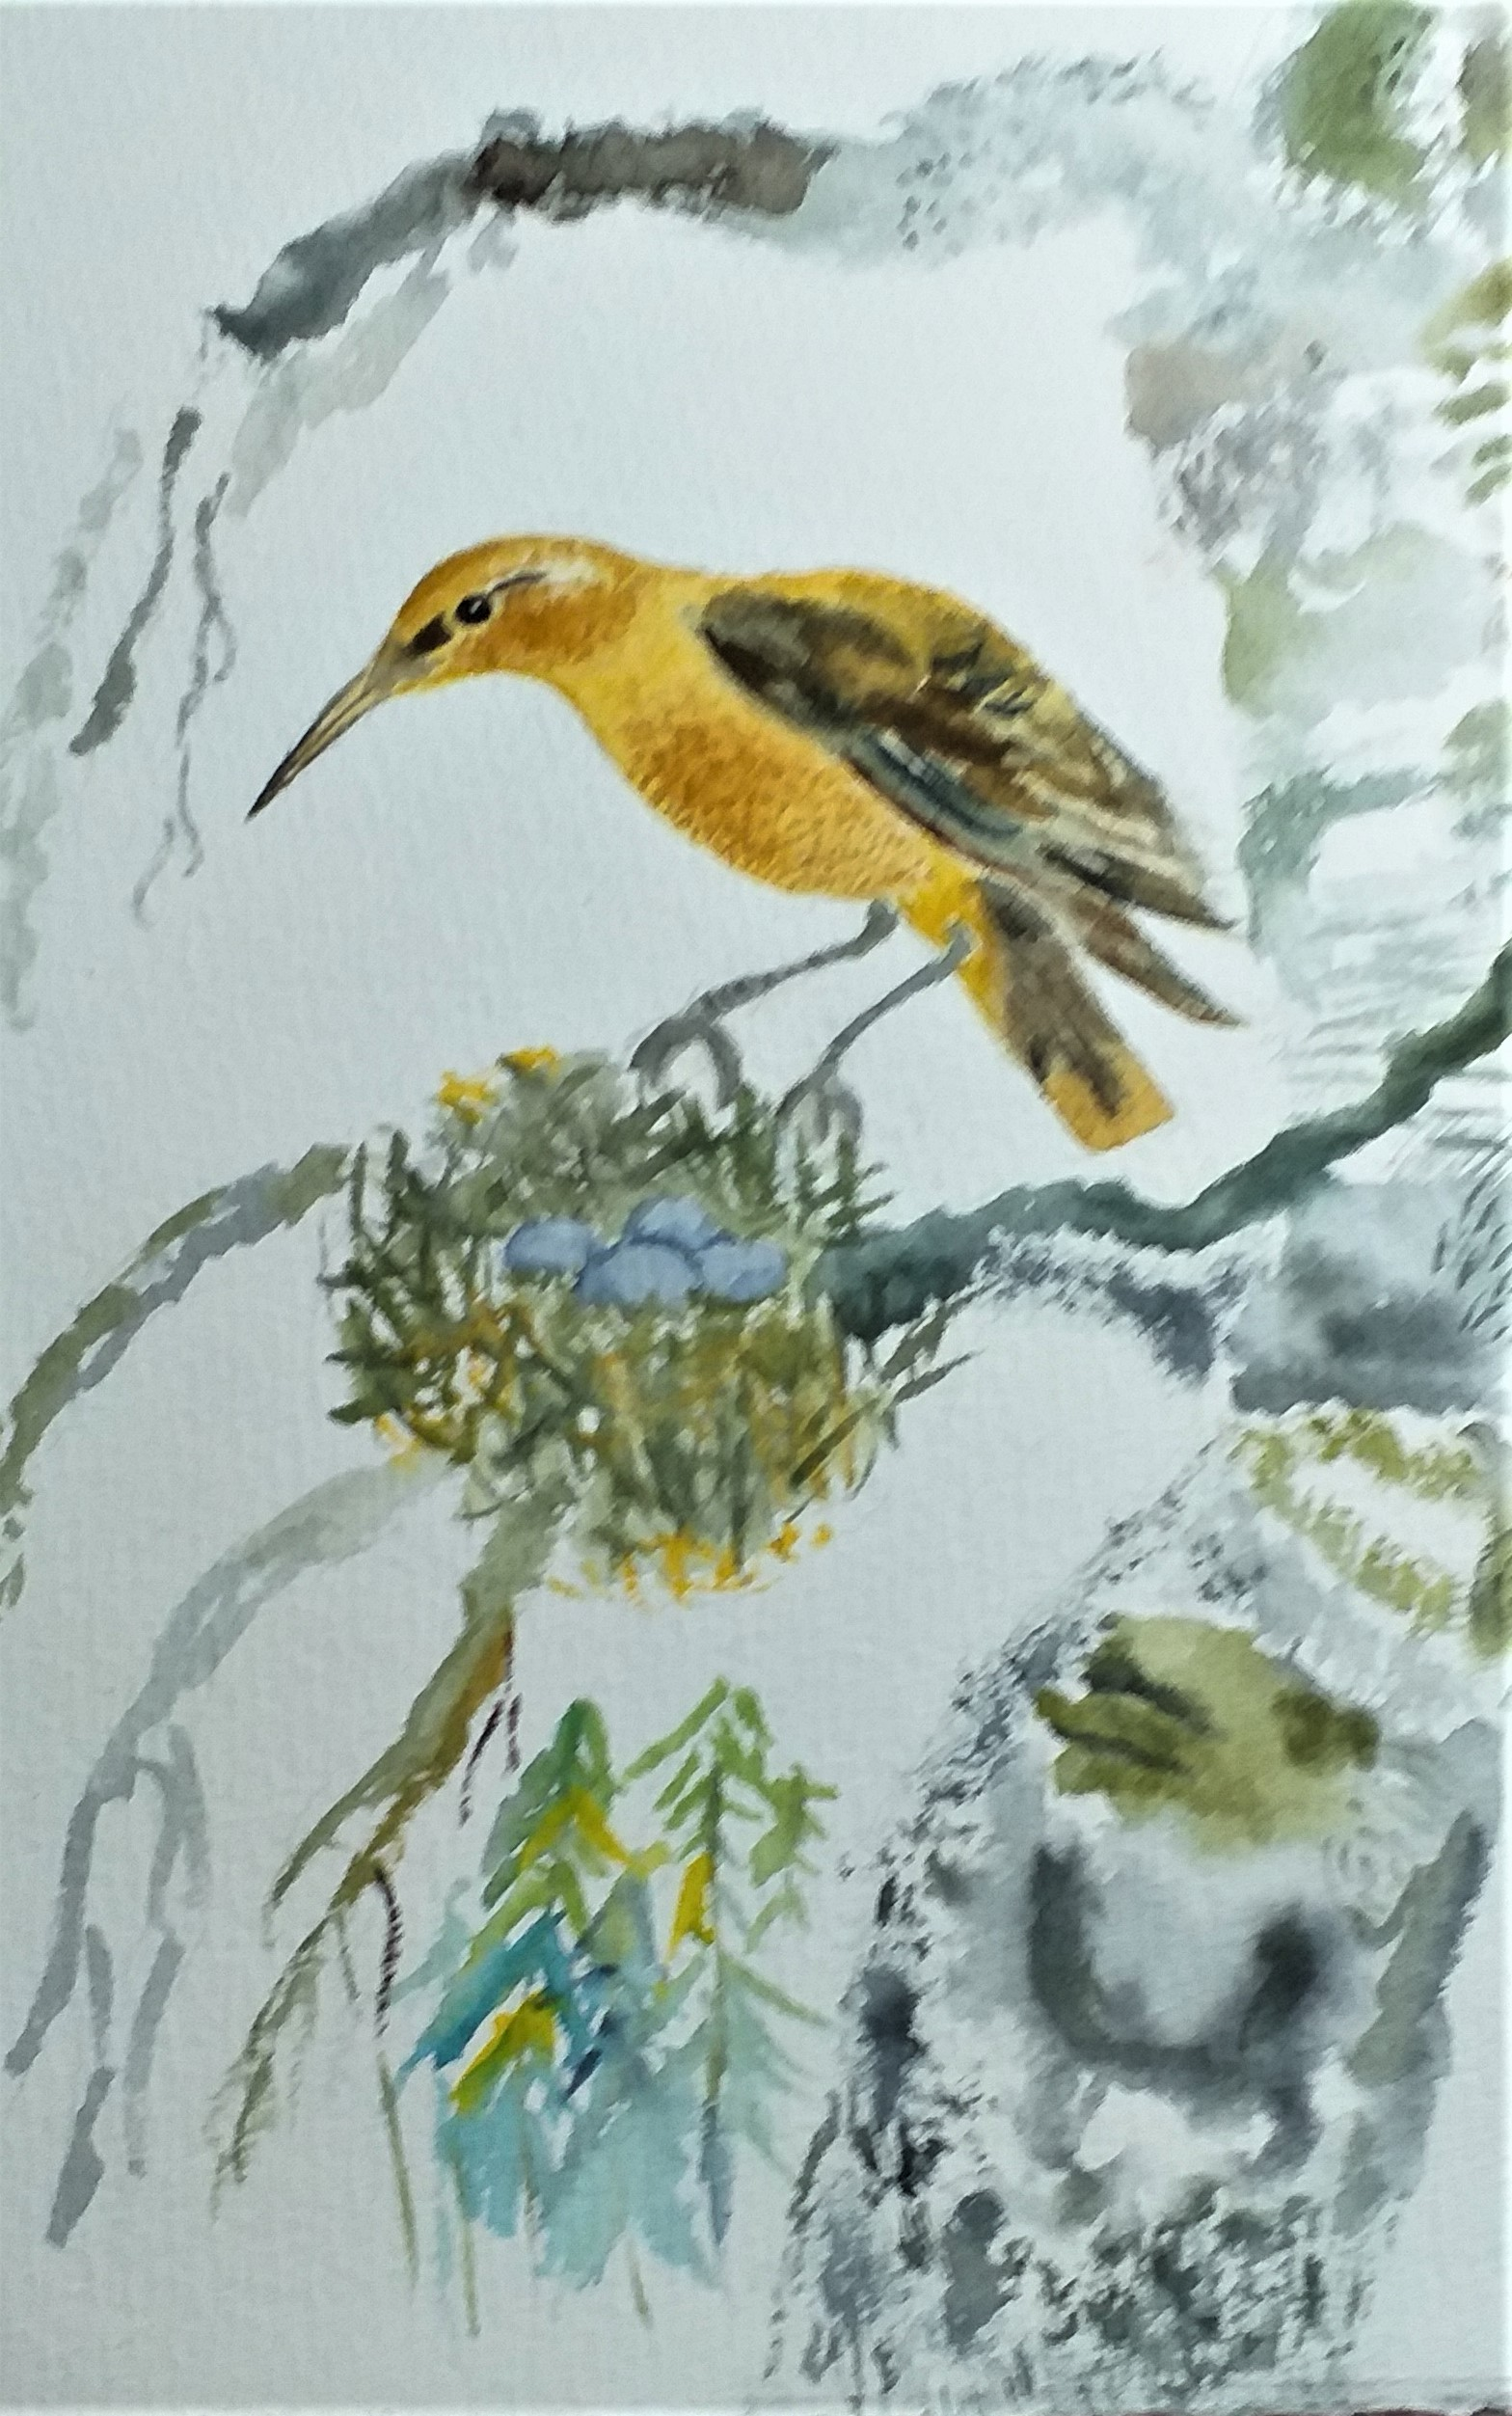 Watercolour painting of a bird. Students work at art classes in Kidderminster